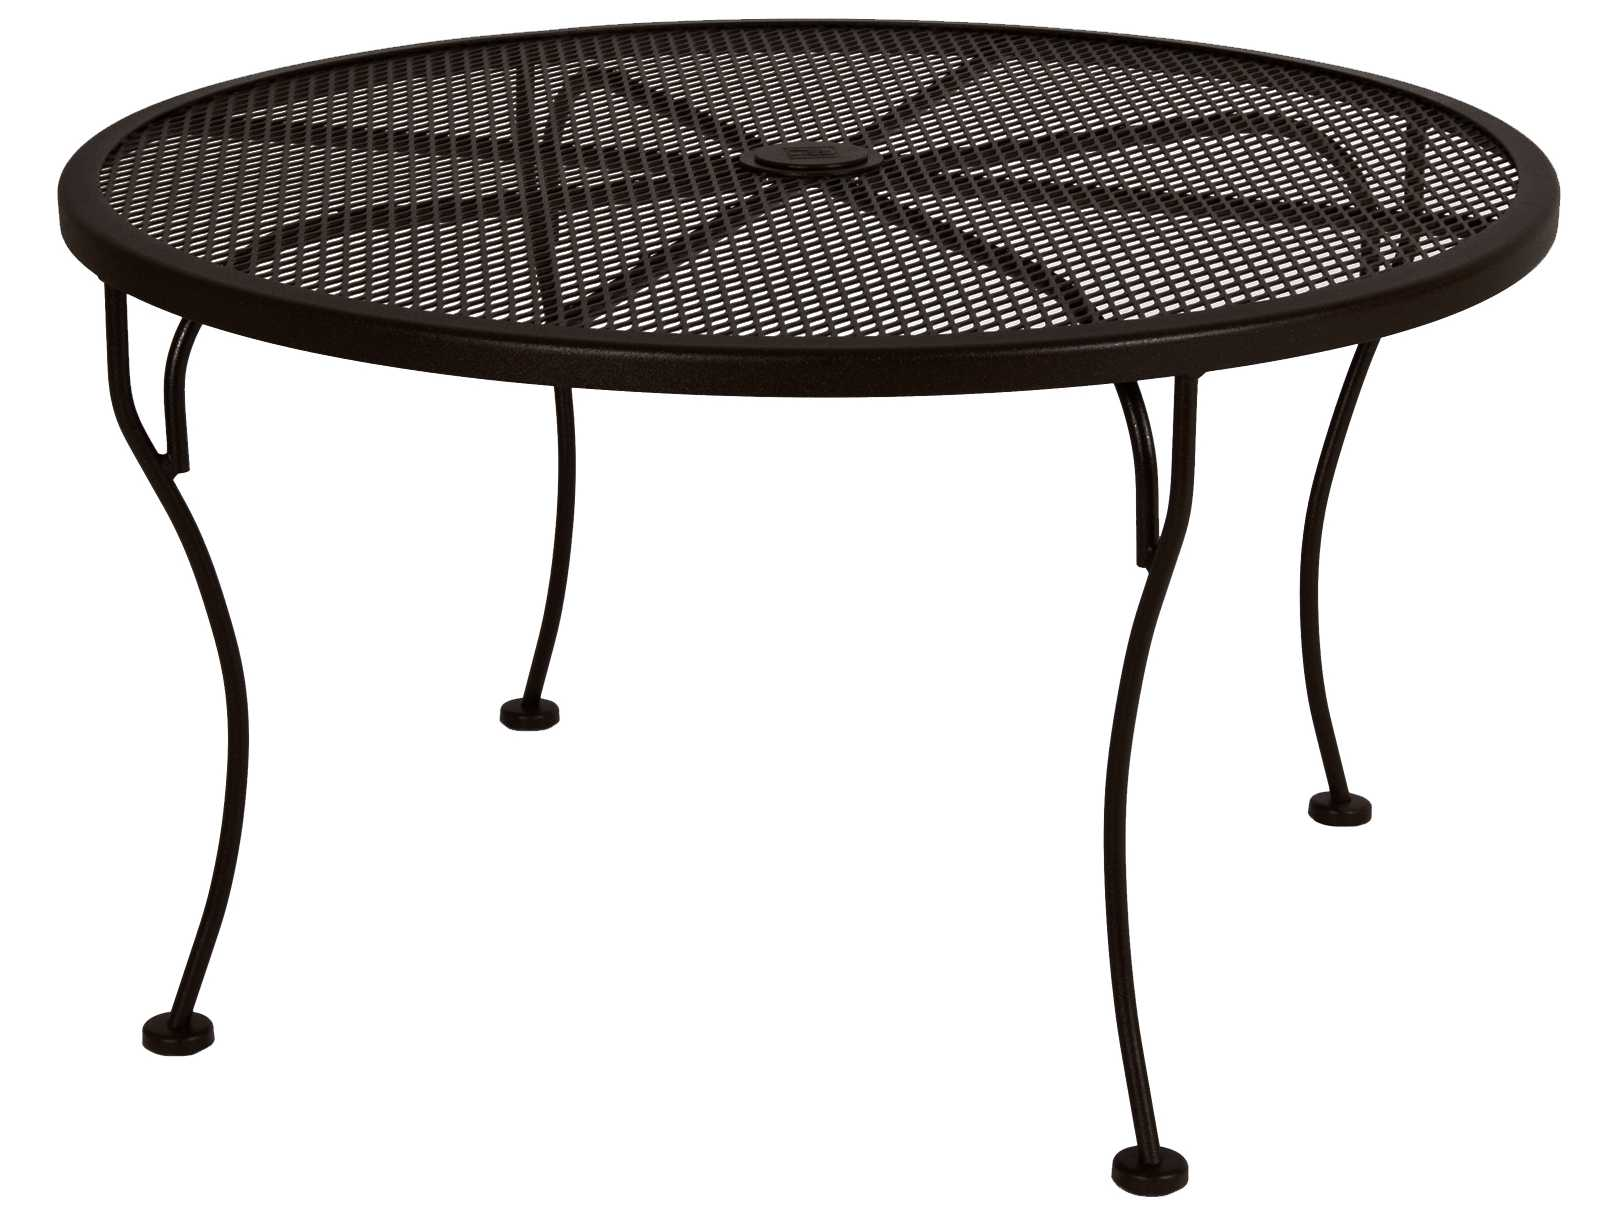 ow lee standard mesh wrought iron 36 round side table with